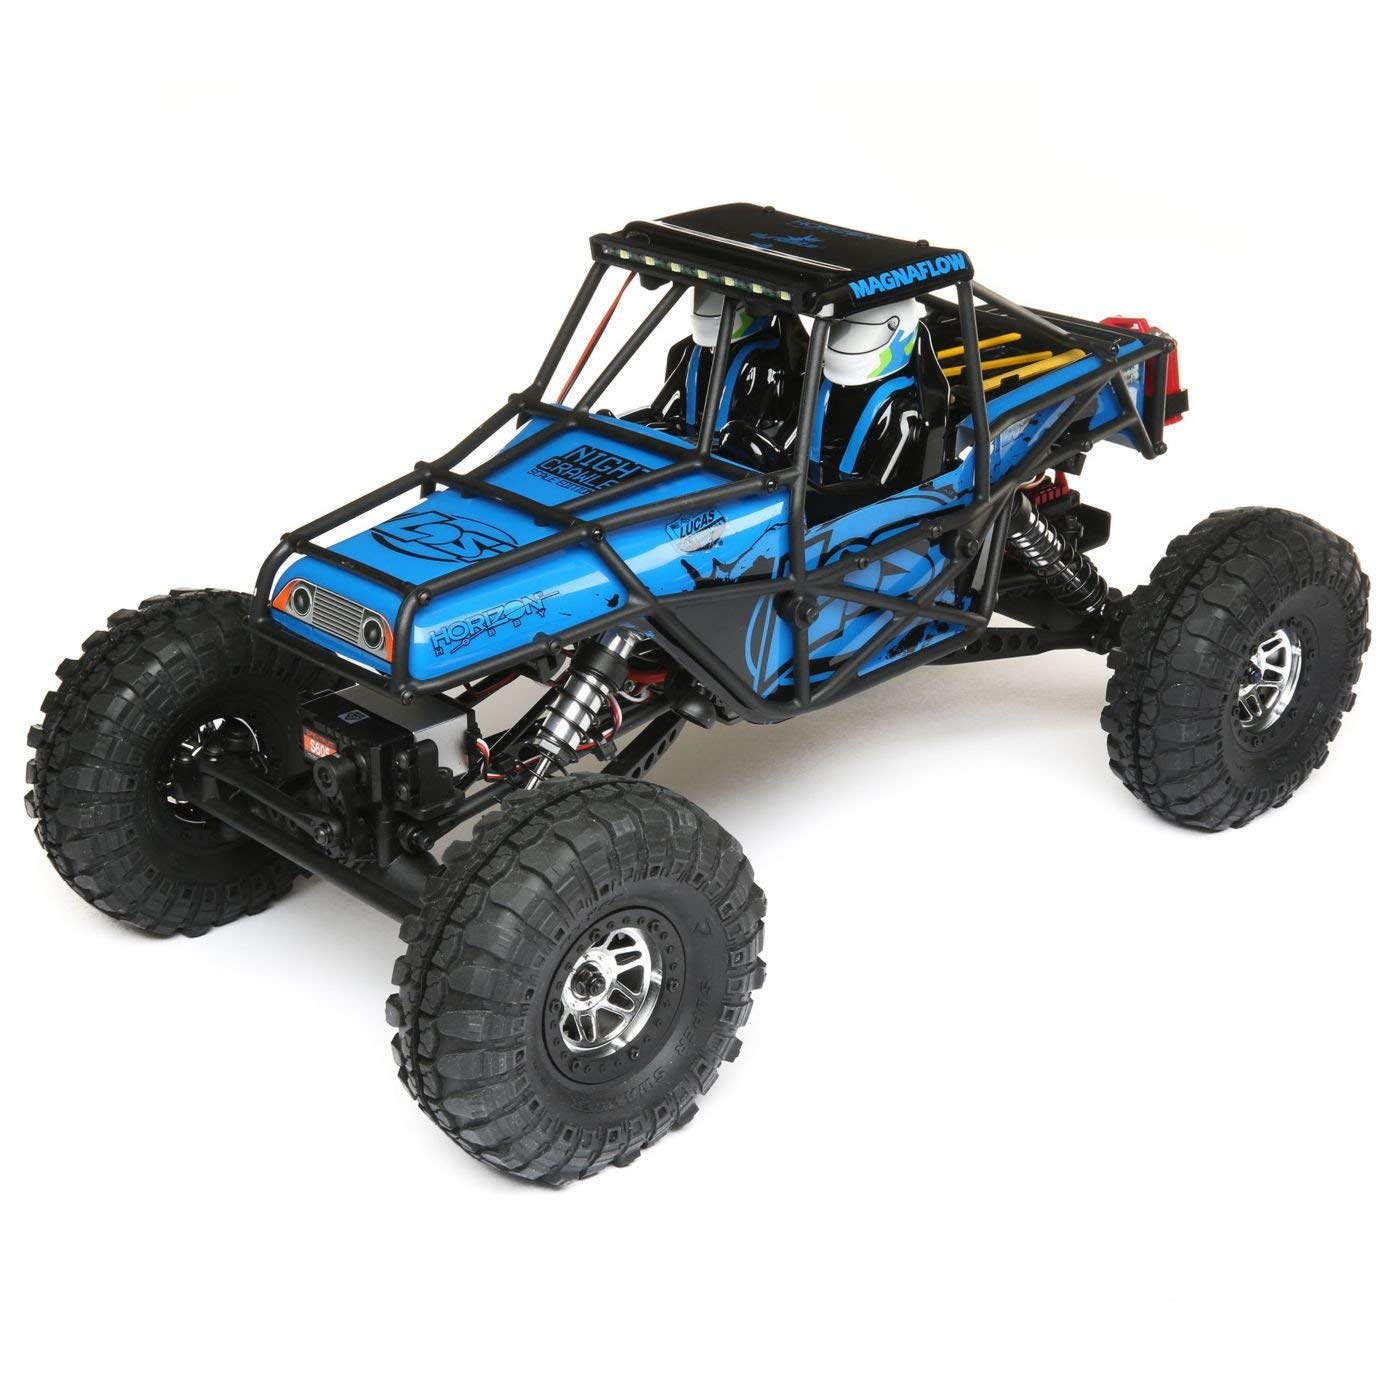 5 Things You Should Know About Remote Control Trail Trucks